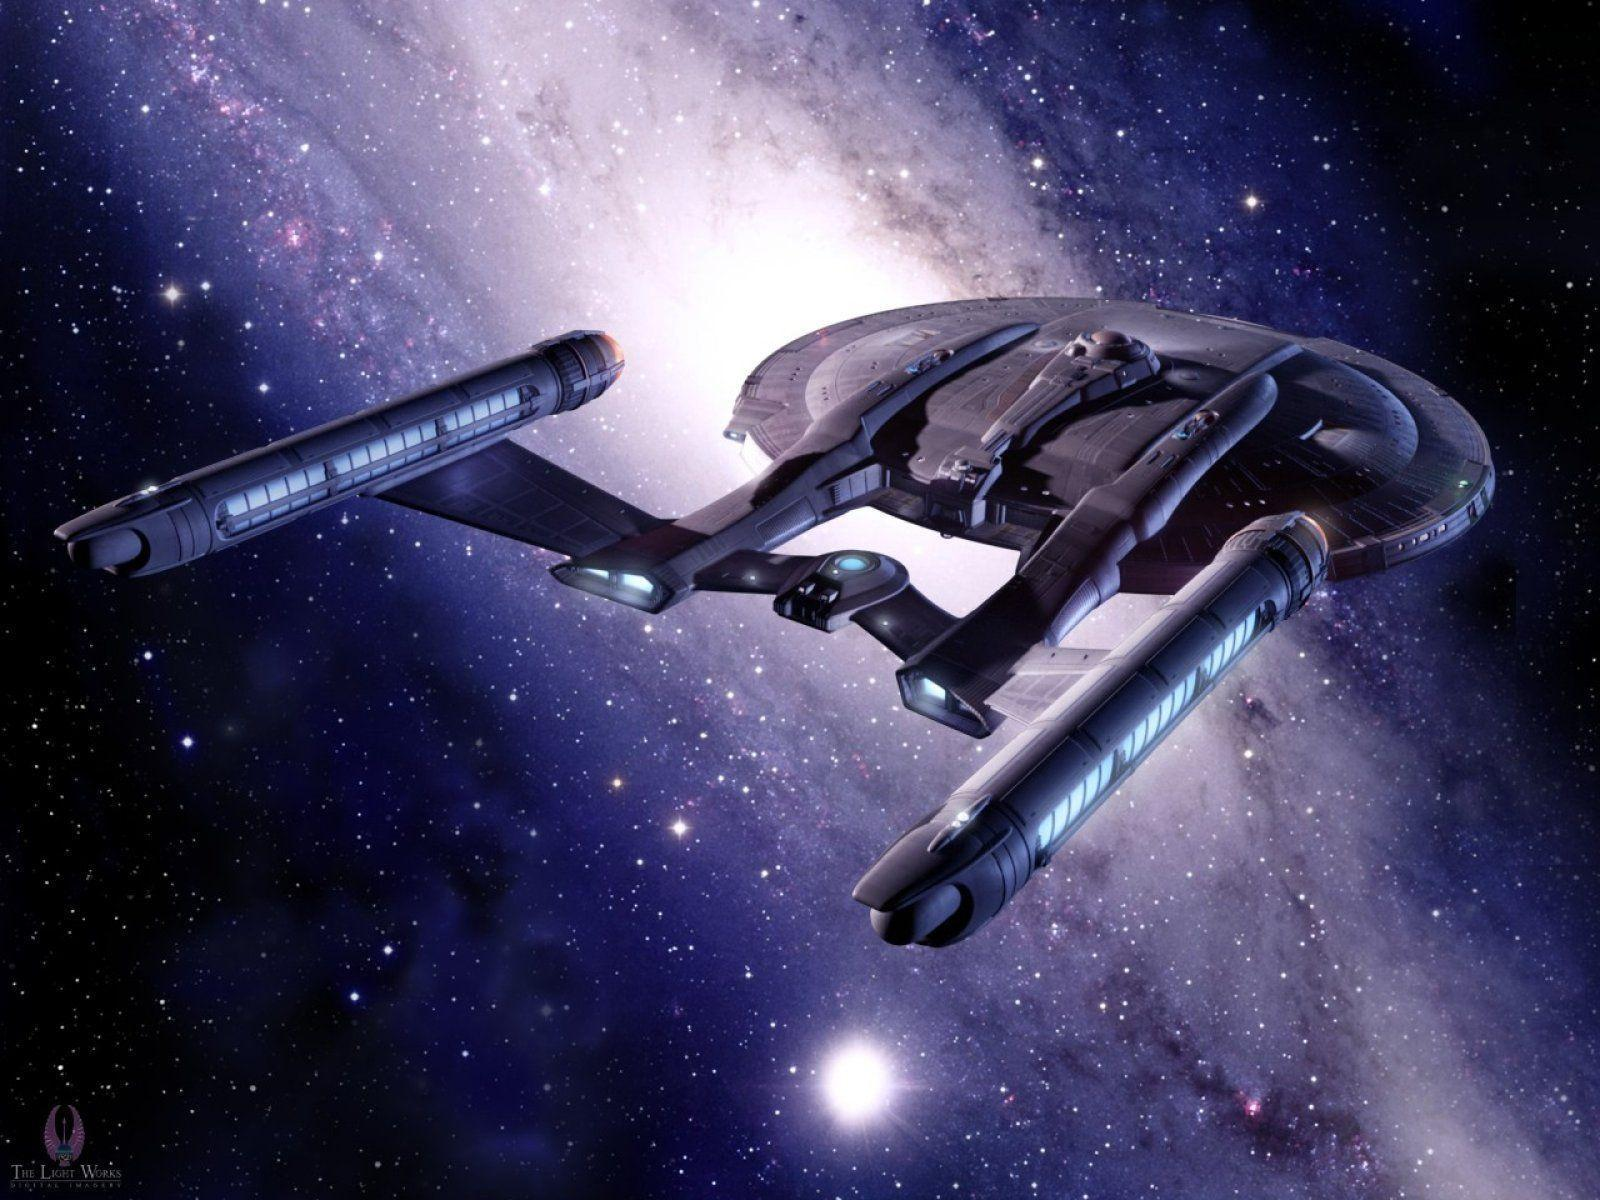 Fabuleux Star Trek Enterprise Wallpapers - Wallpaper Cave ON66